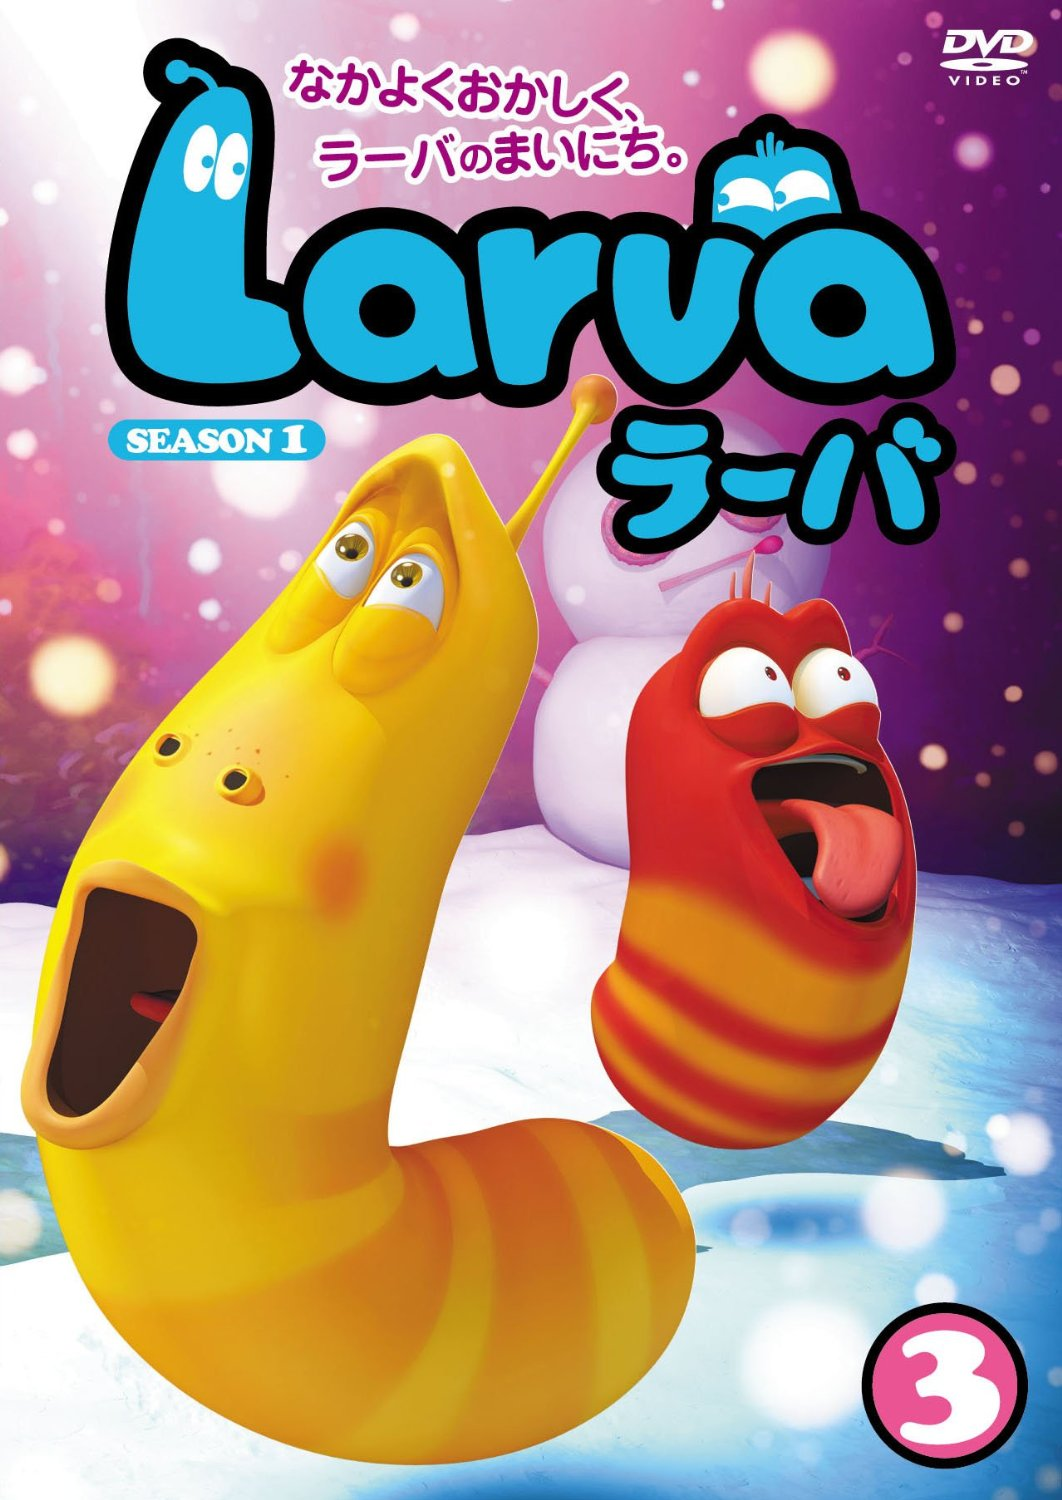 Larva - Volume 1 Season 1 123Movies